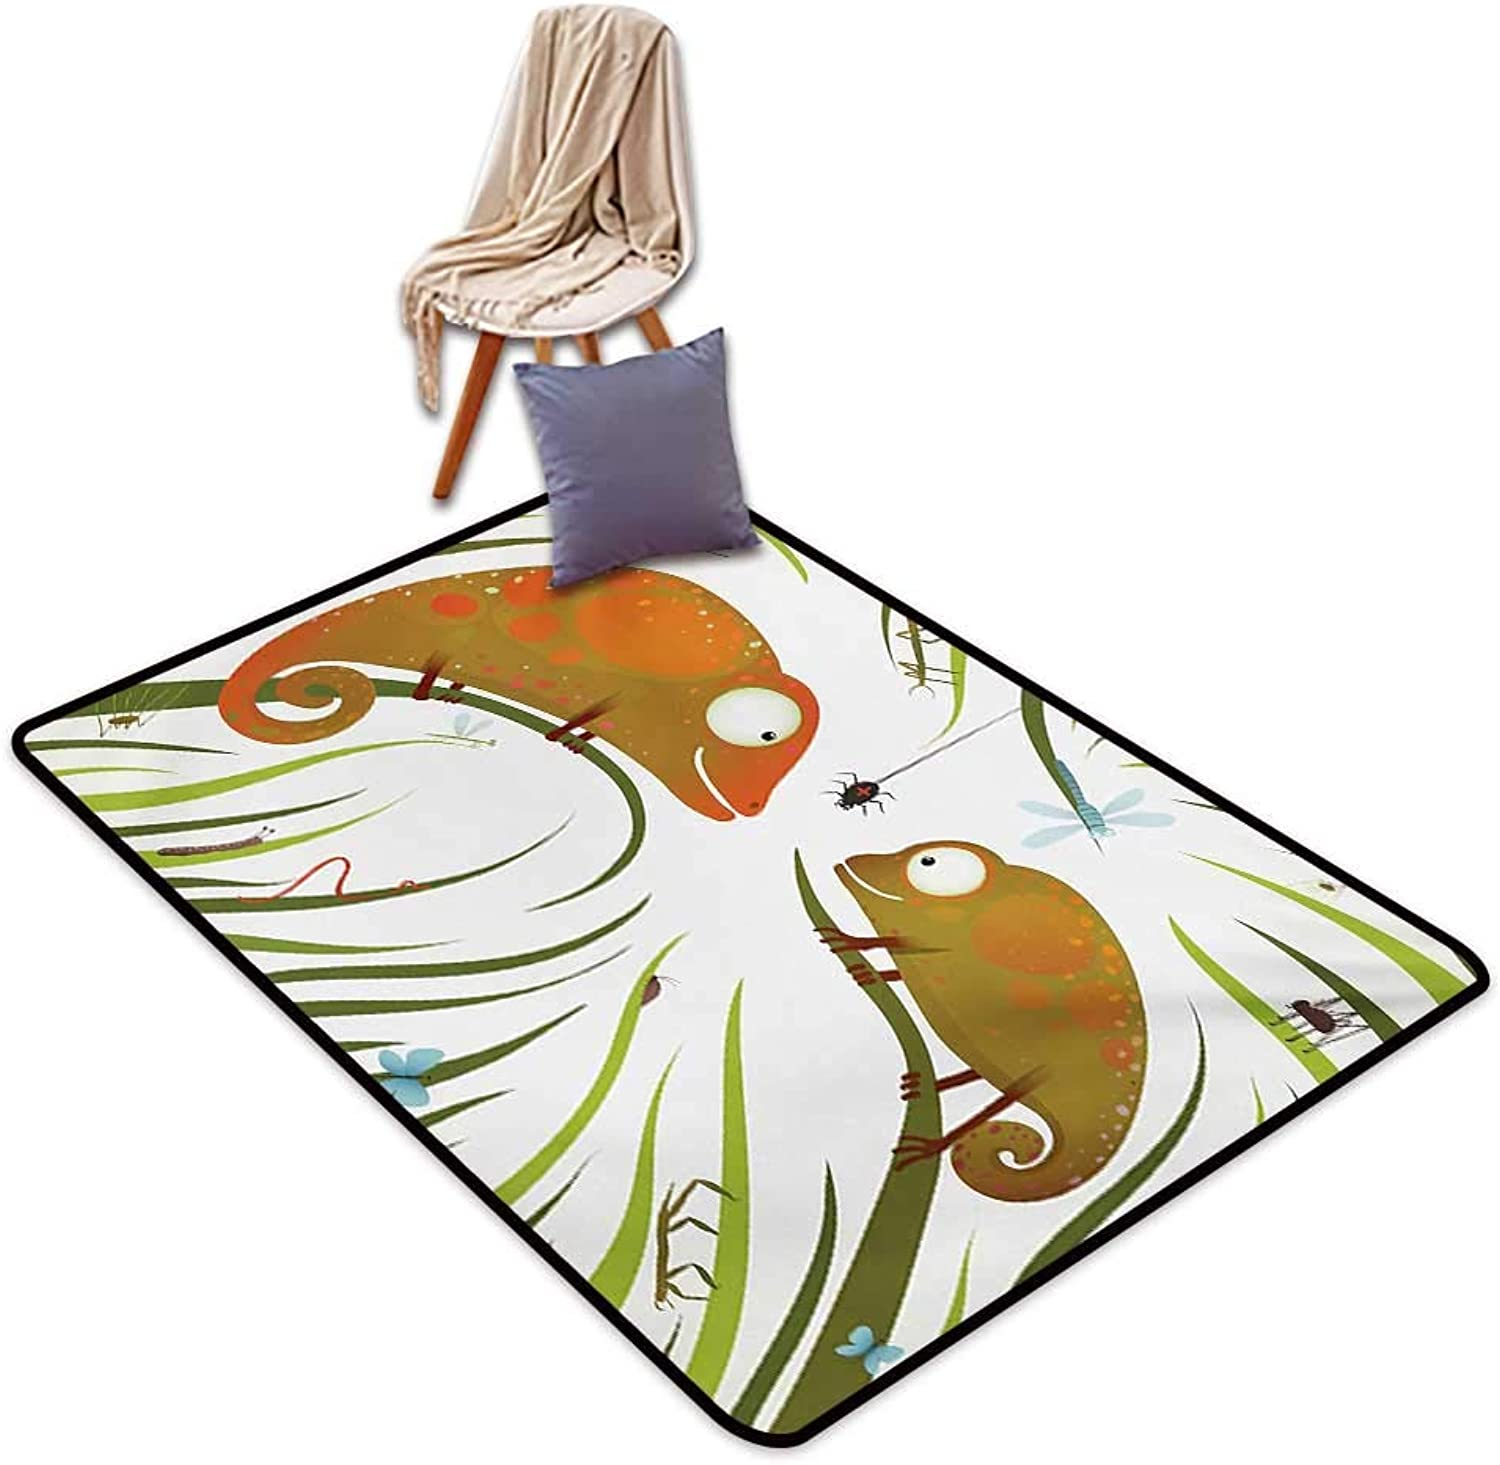 Chameleons Indoor Super Absorbs Mud Doormat Hungry Animals Grass Looking at Spider Insect World Illustration Worm Ladybug Water Absorption, Anti-Skid and Oil Proof 48  Wx71 L Multicolor